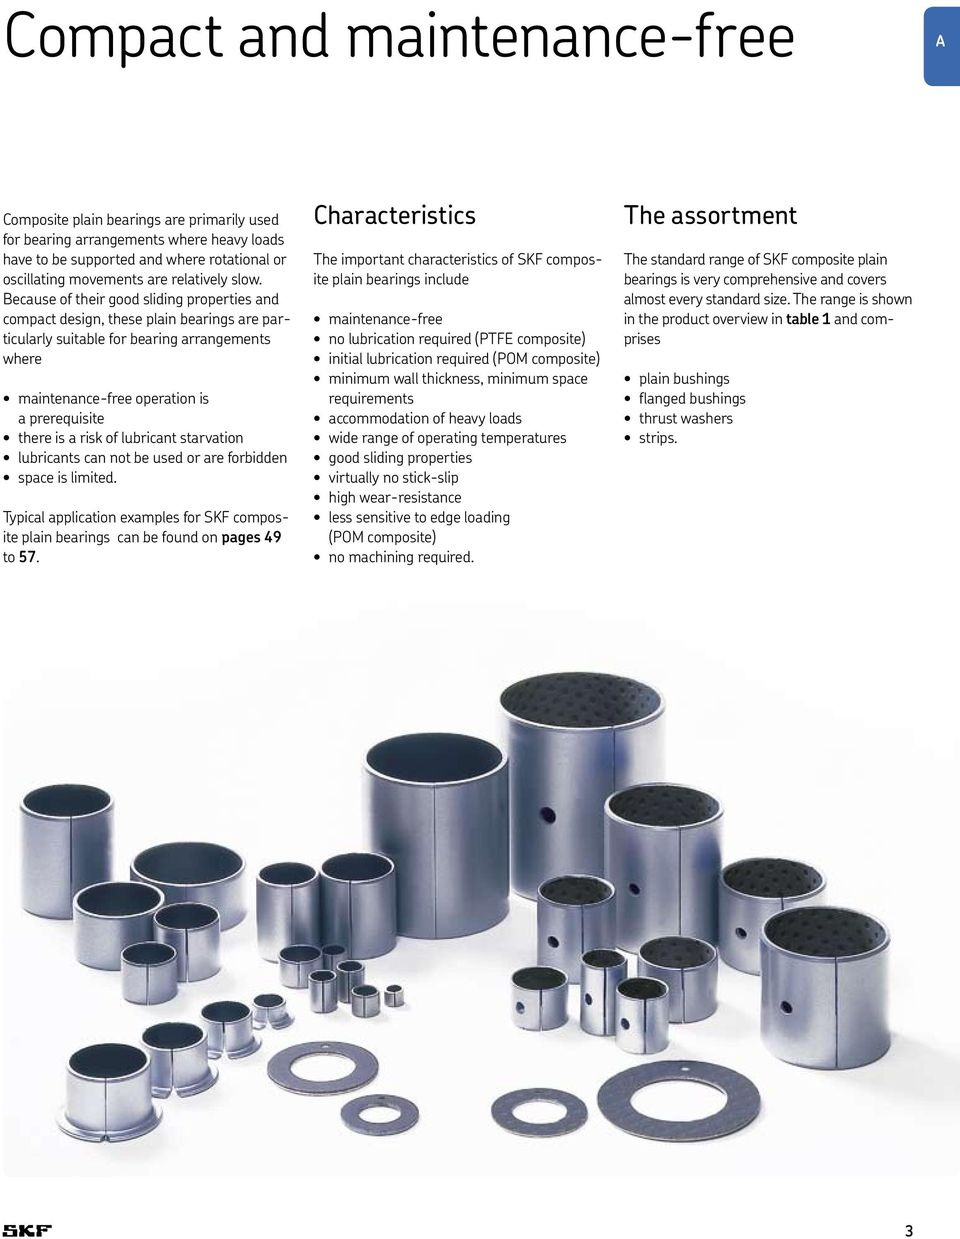 a risk of lubricant starvation lubricants can not be used or are forbidden space is limited. Typical application examples for SKF composite plain bearings can be found on pages 49 to 57.